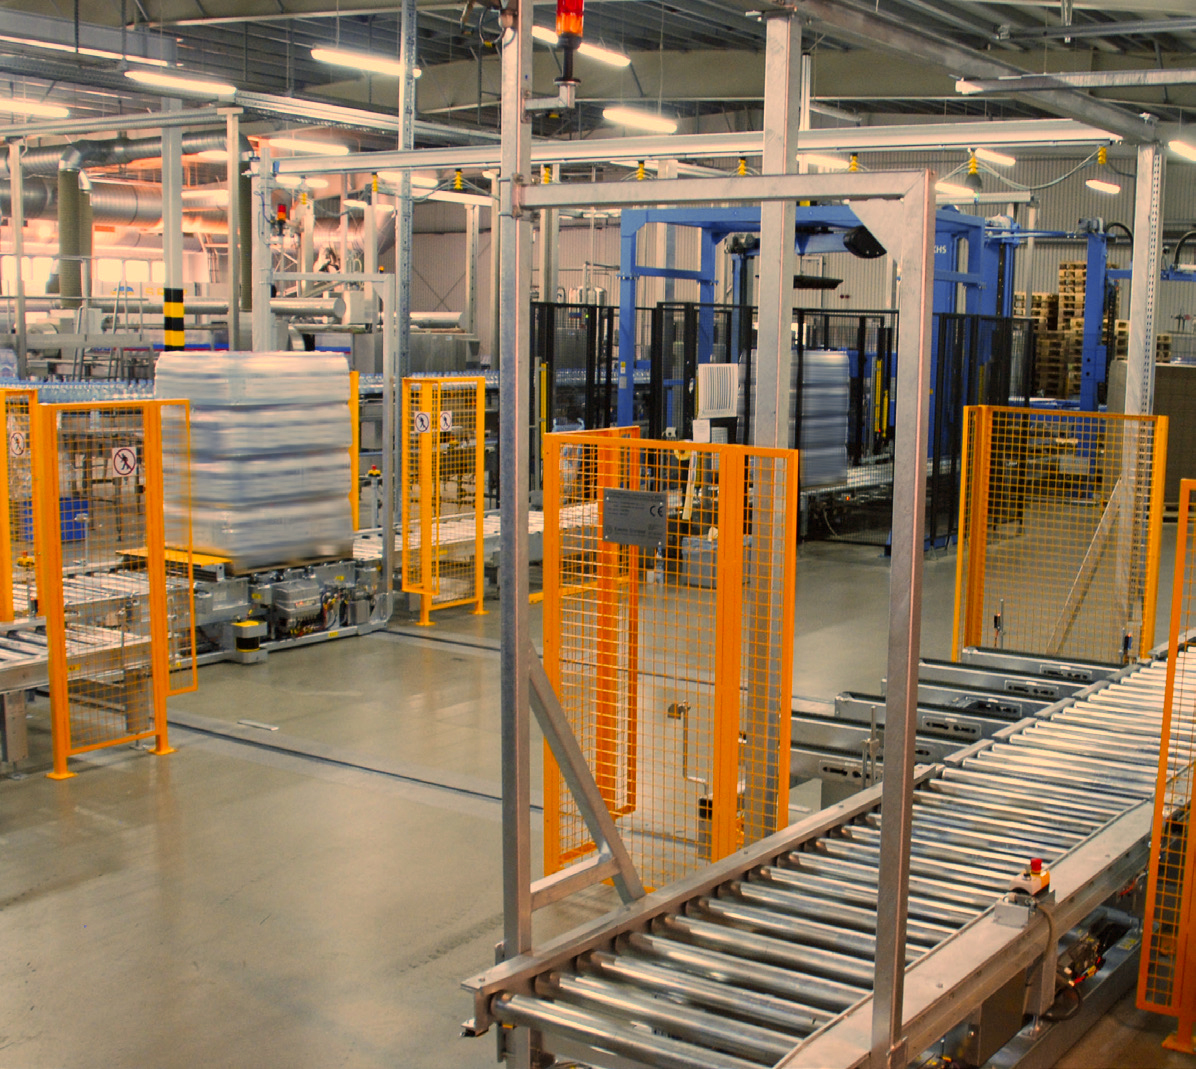 Case study: Automated transport and storage systems for thermally insulated containers